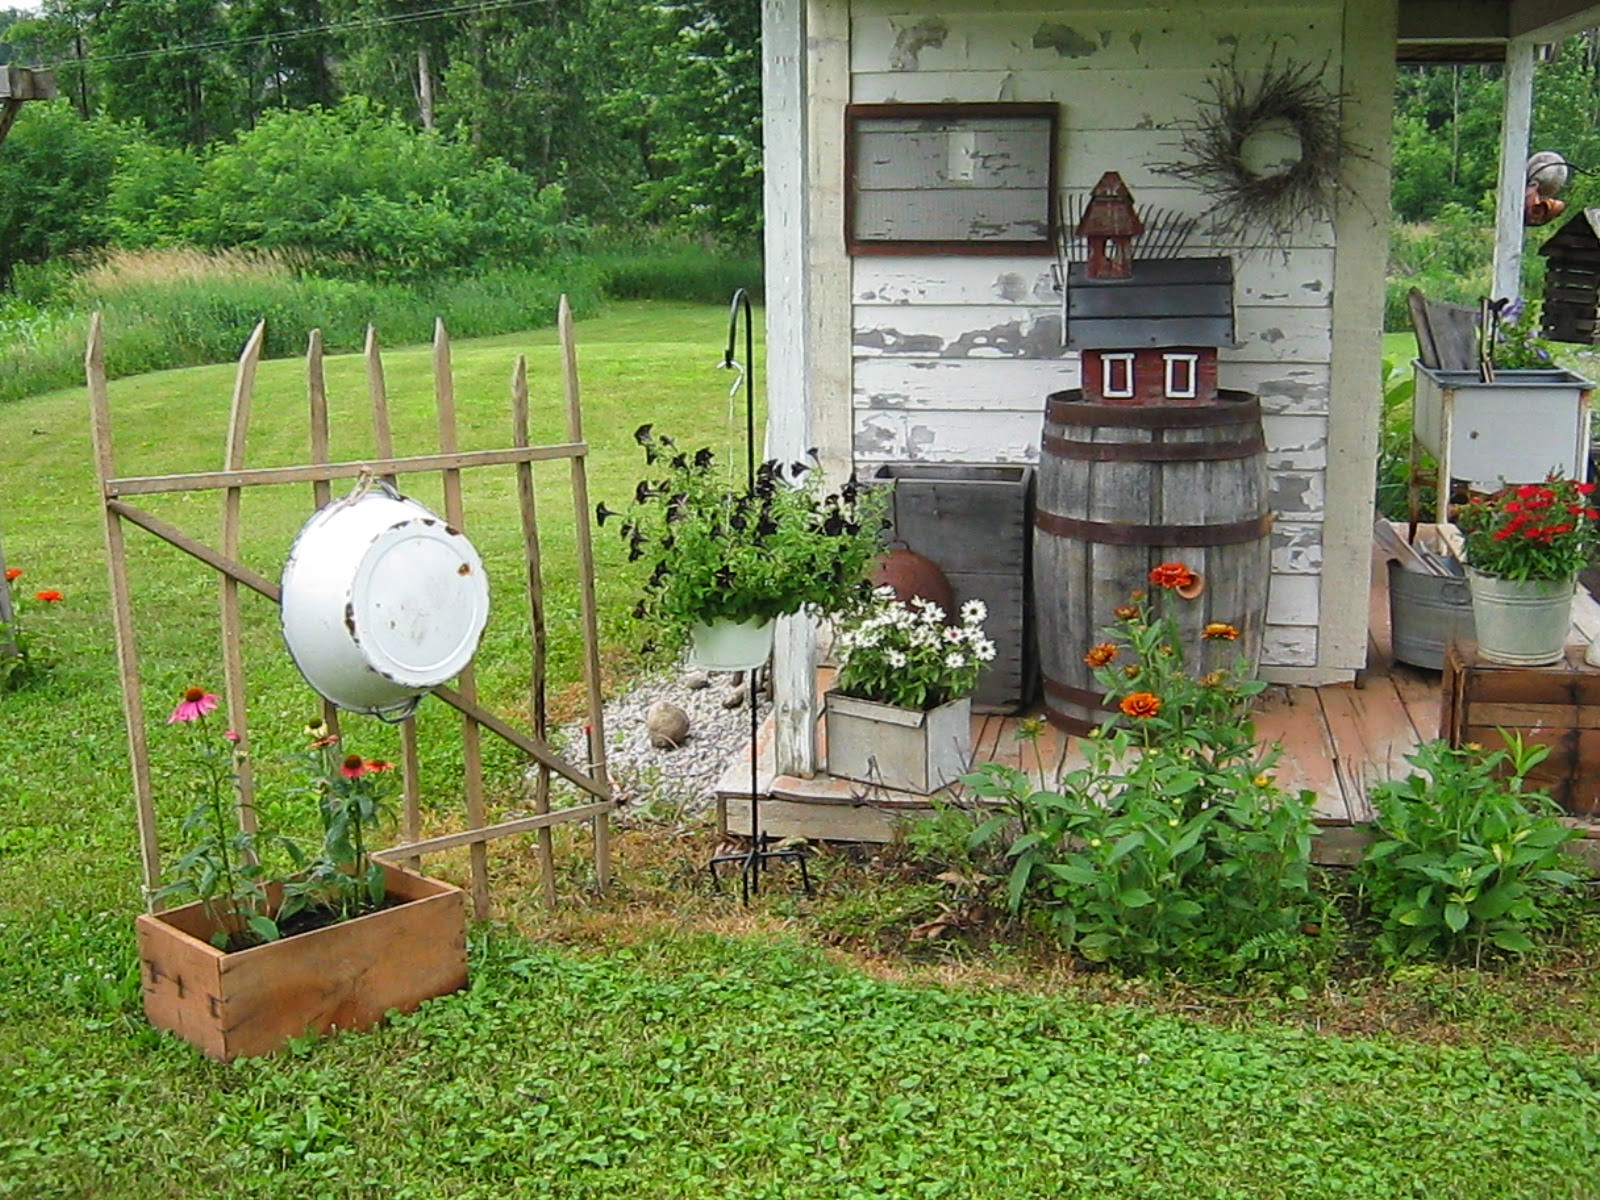 Primitive Passion Decorating: Garden Shed Expansion